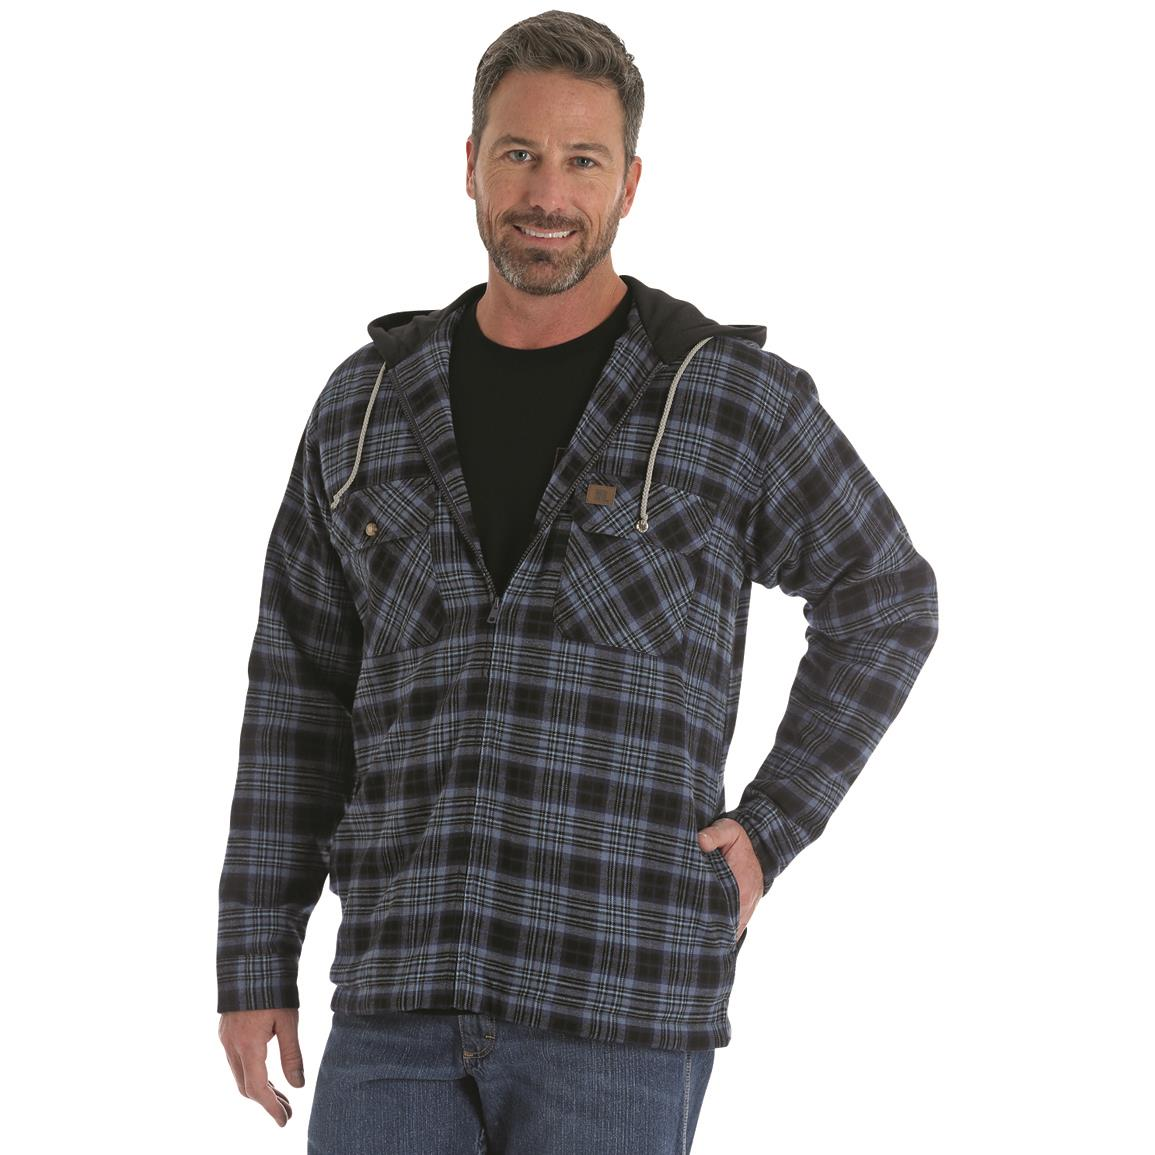 Wrangler RIGGS Workwear Men's Flannel Hooded Jacket, Midnight Navy